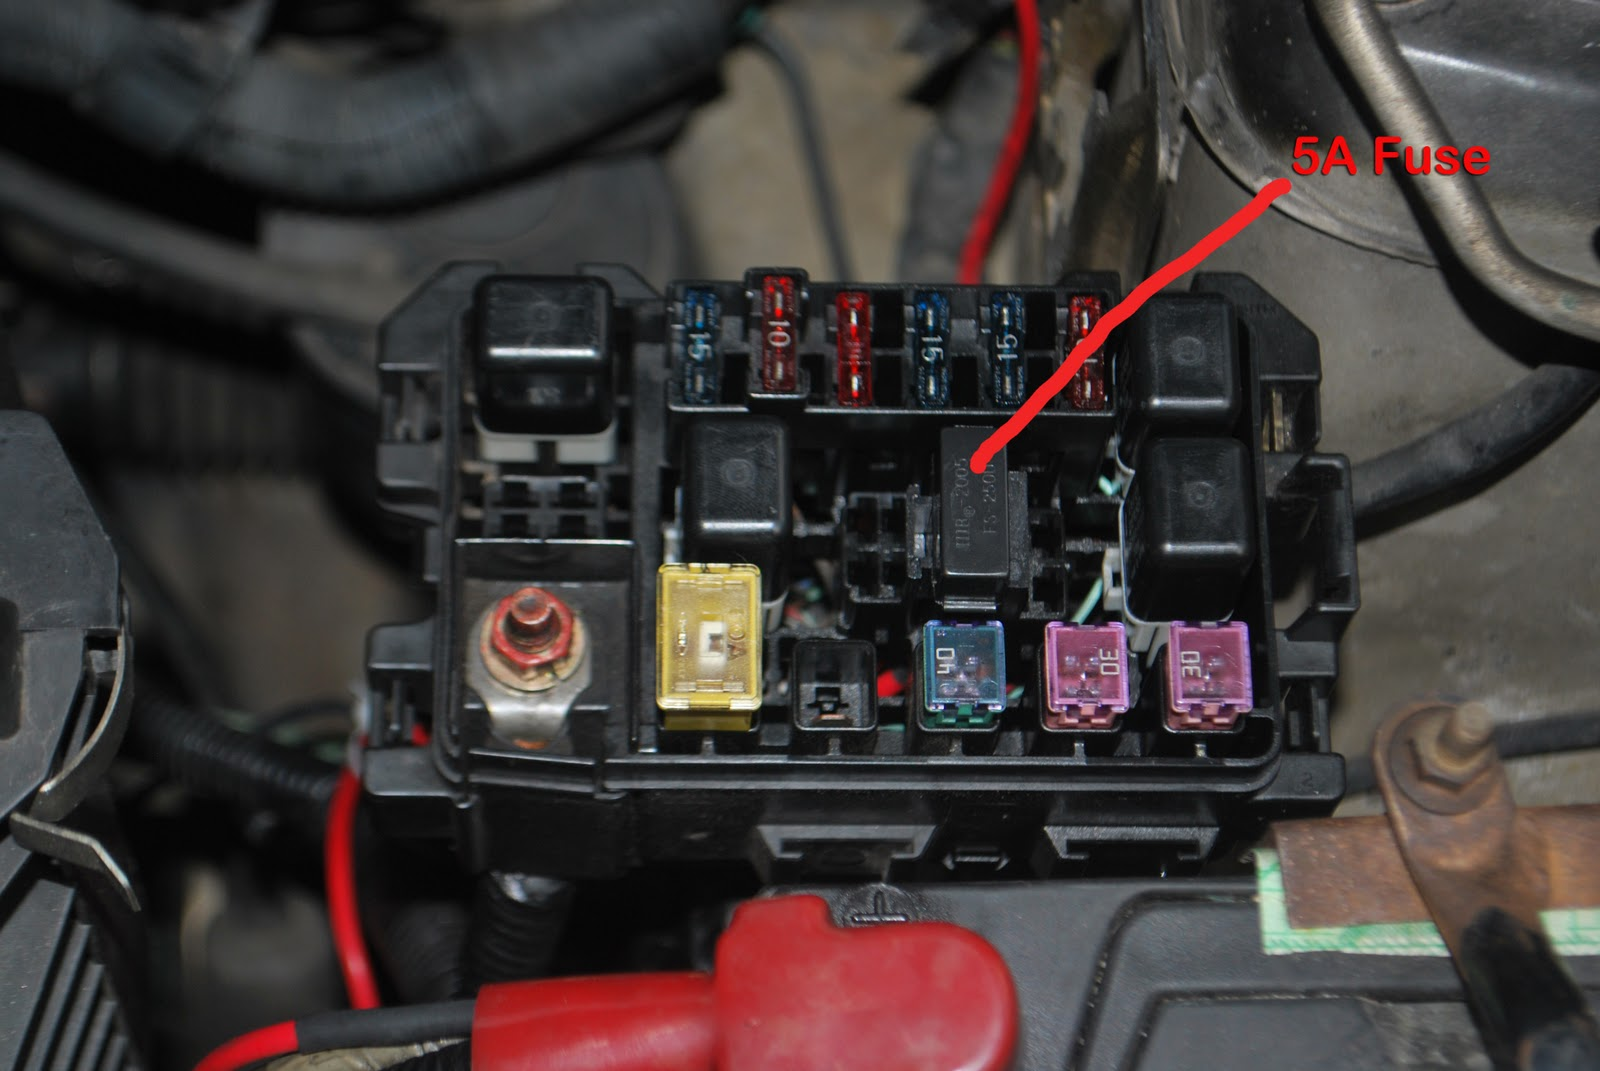 Daihatsu Yrv Fuse Box Location - Wiring images on